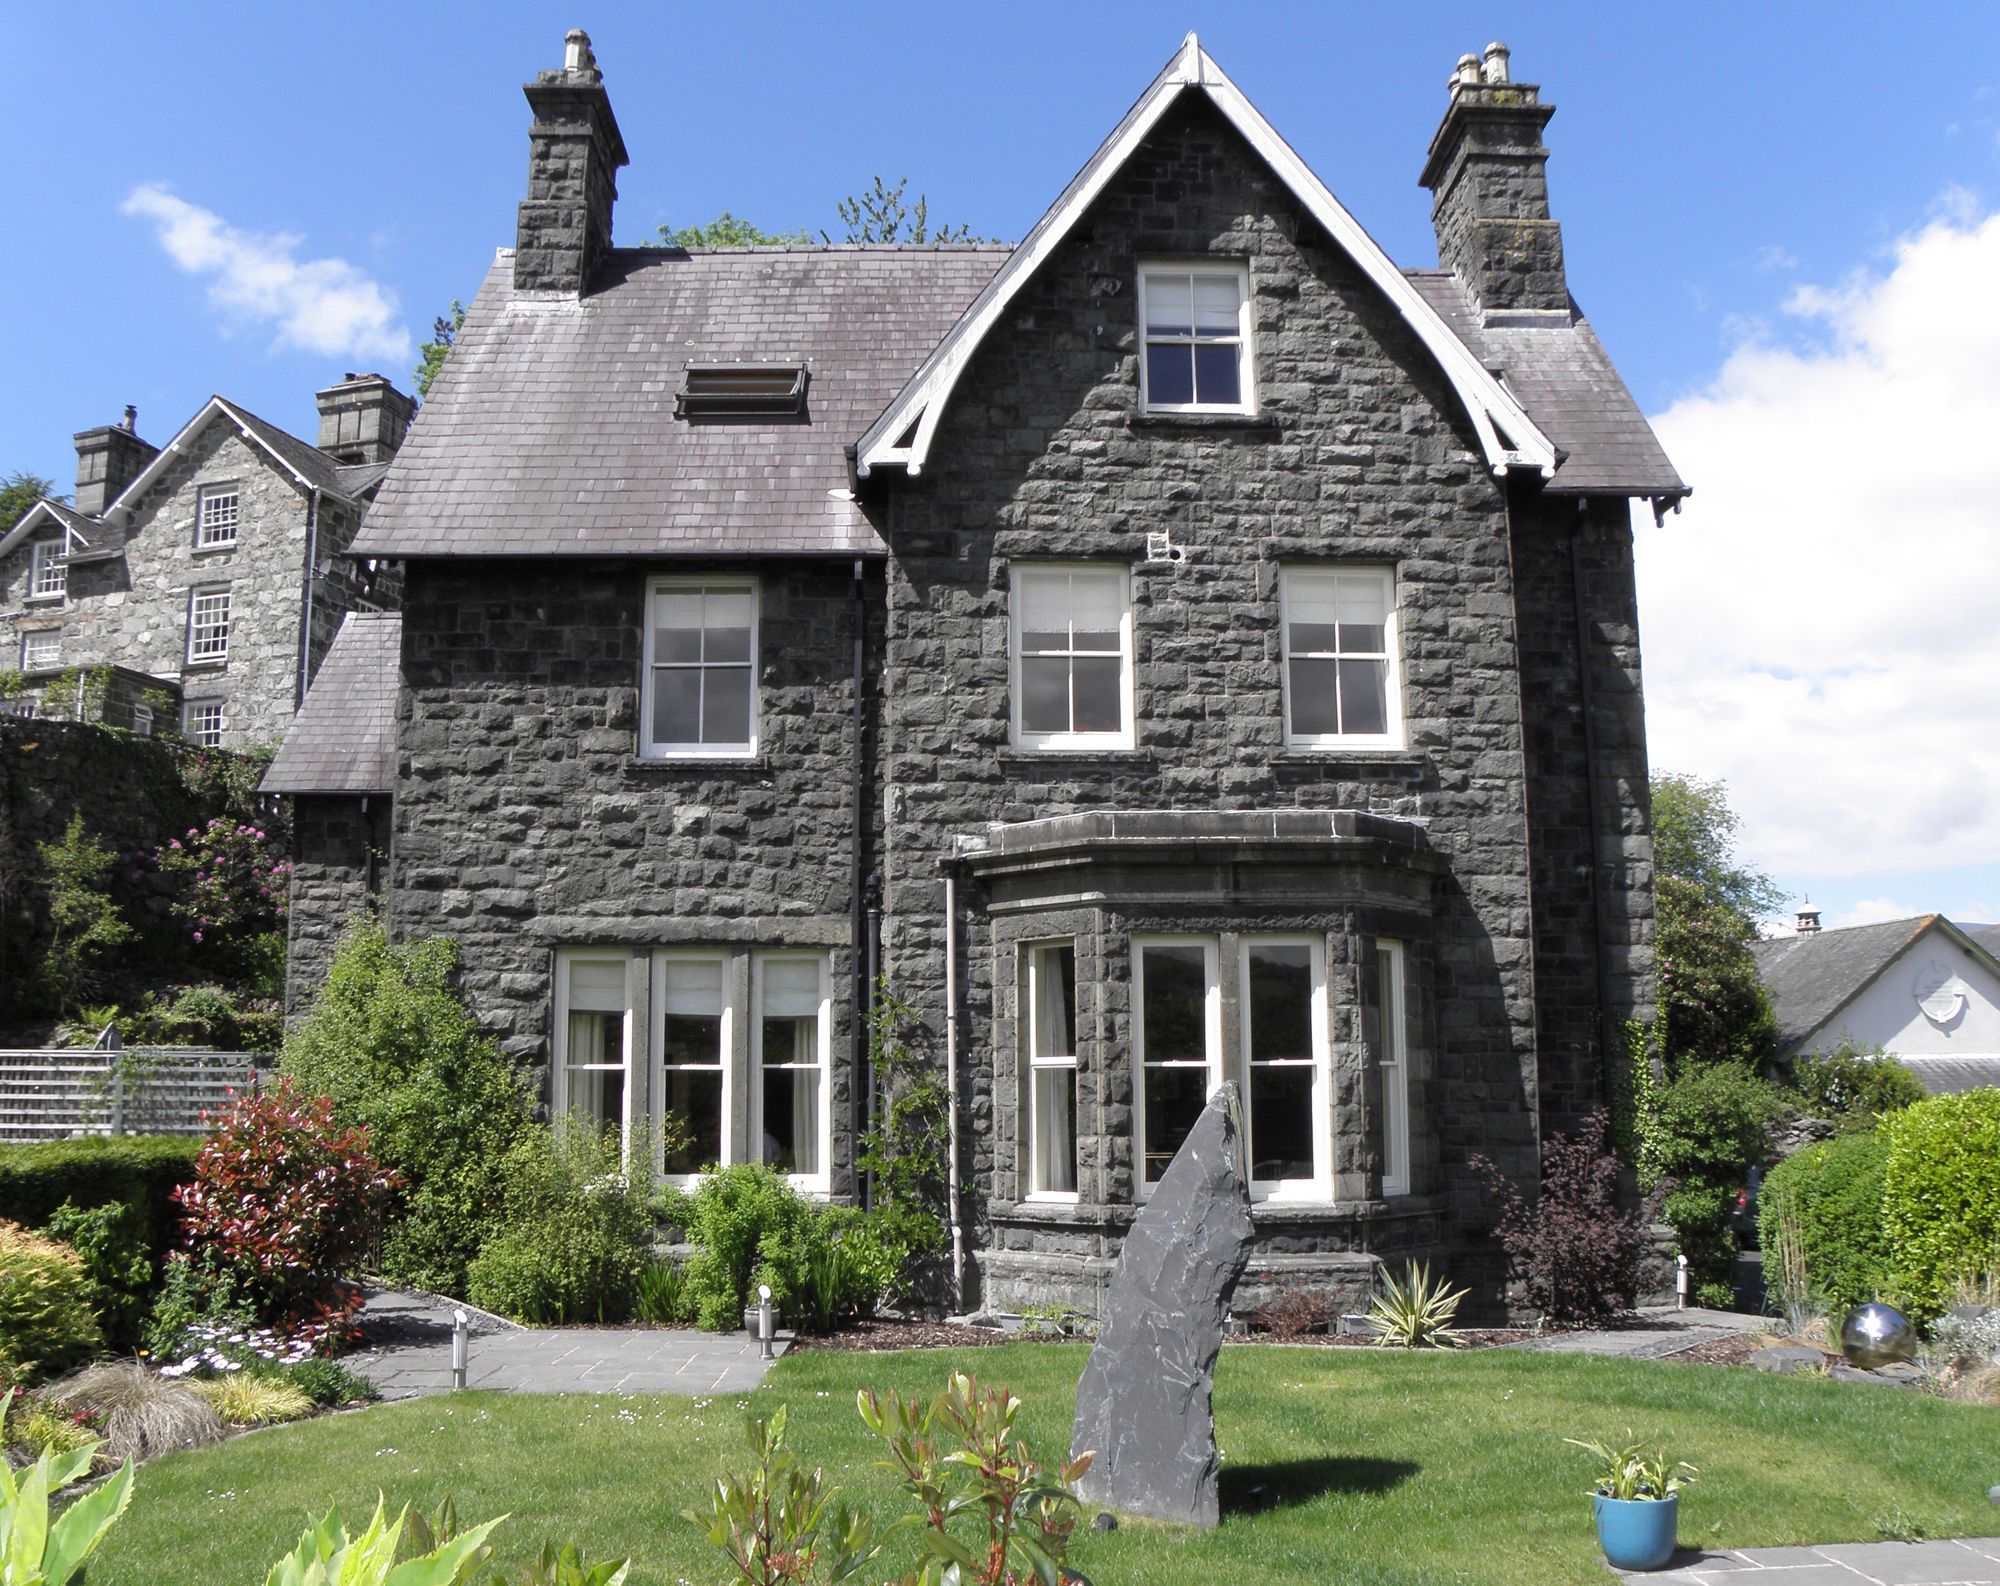 Ffynnon Townhouse